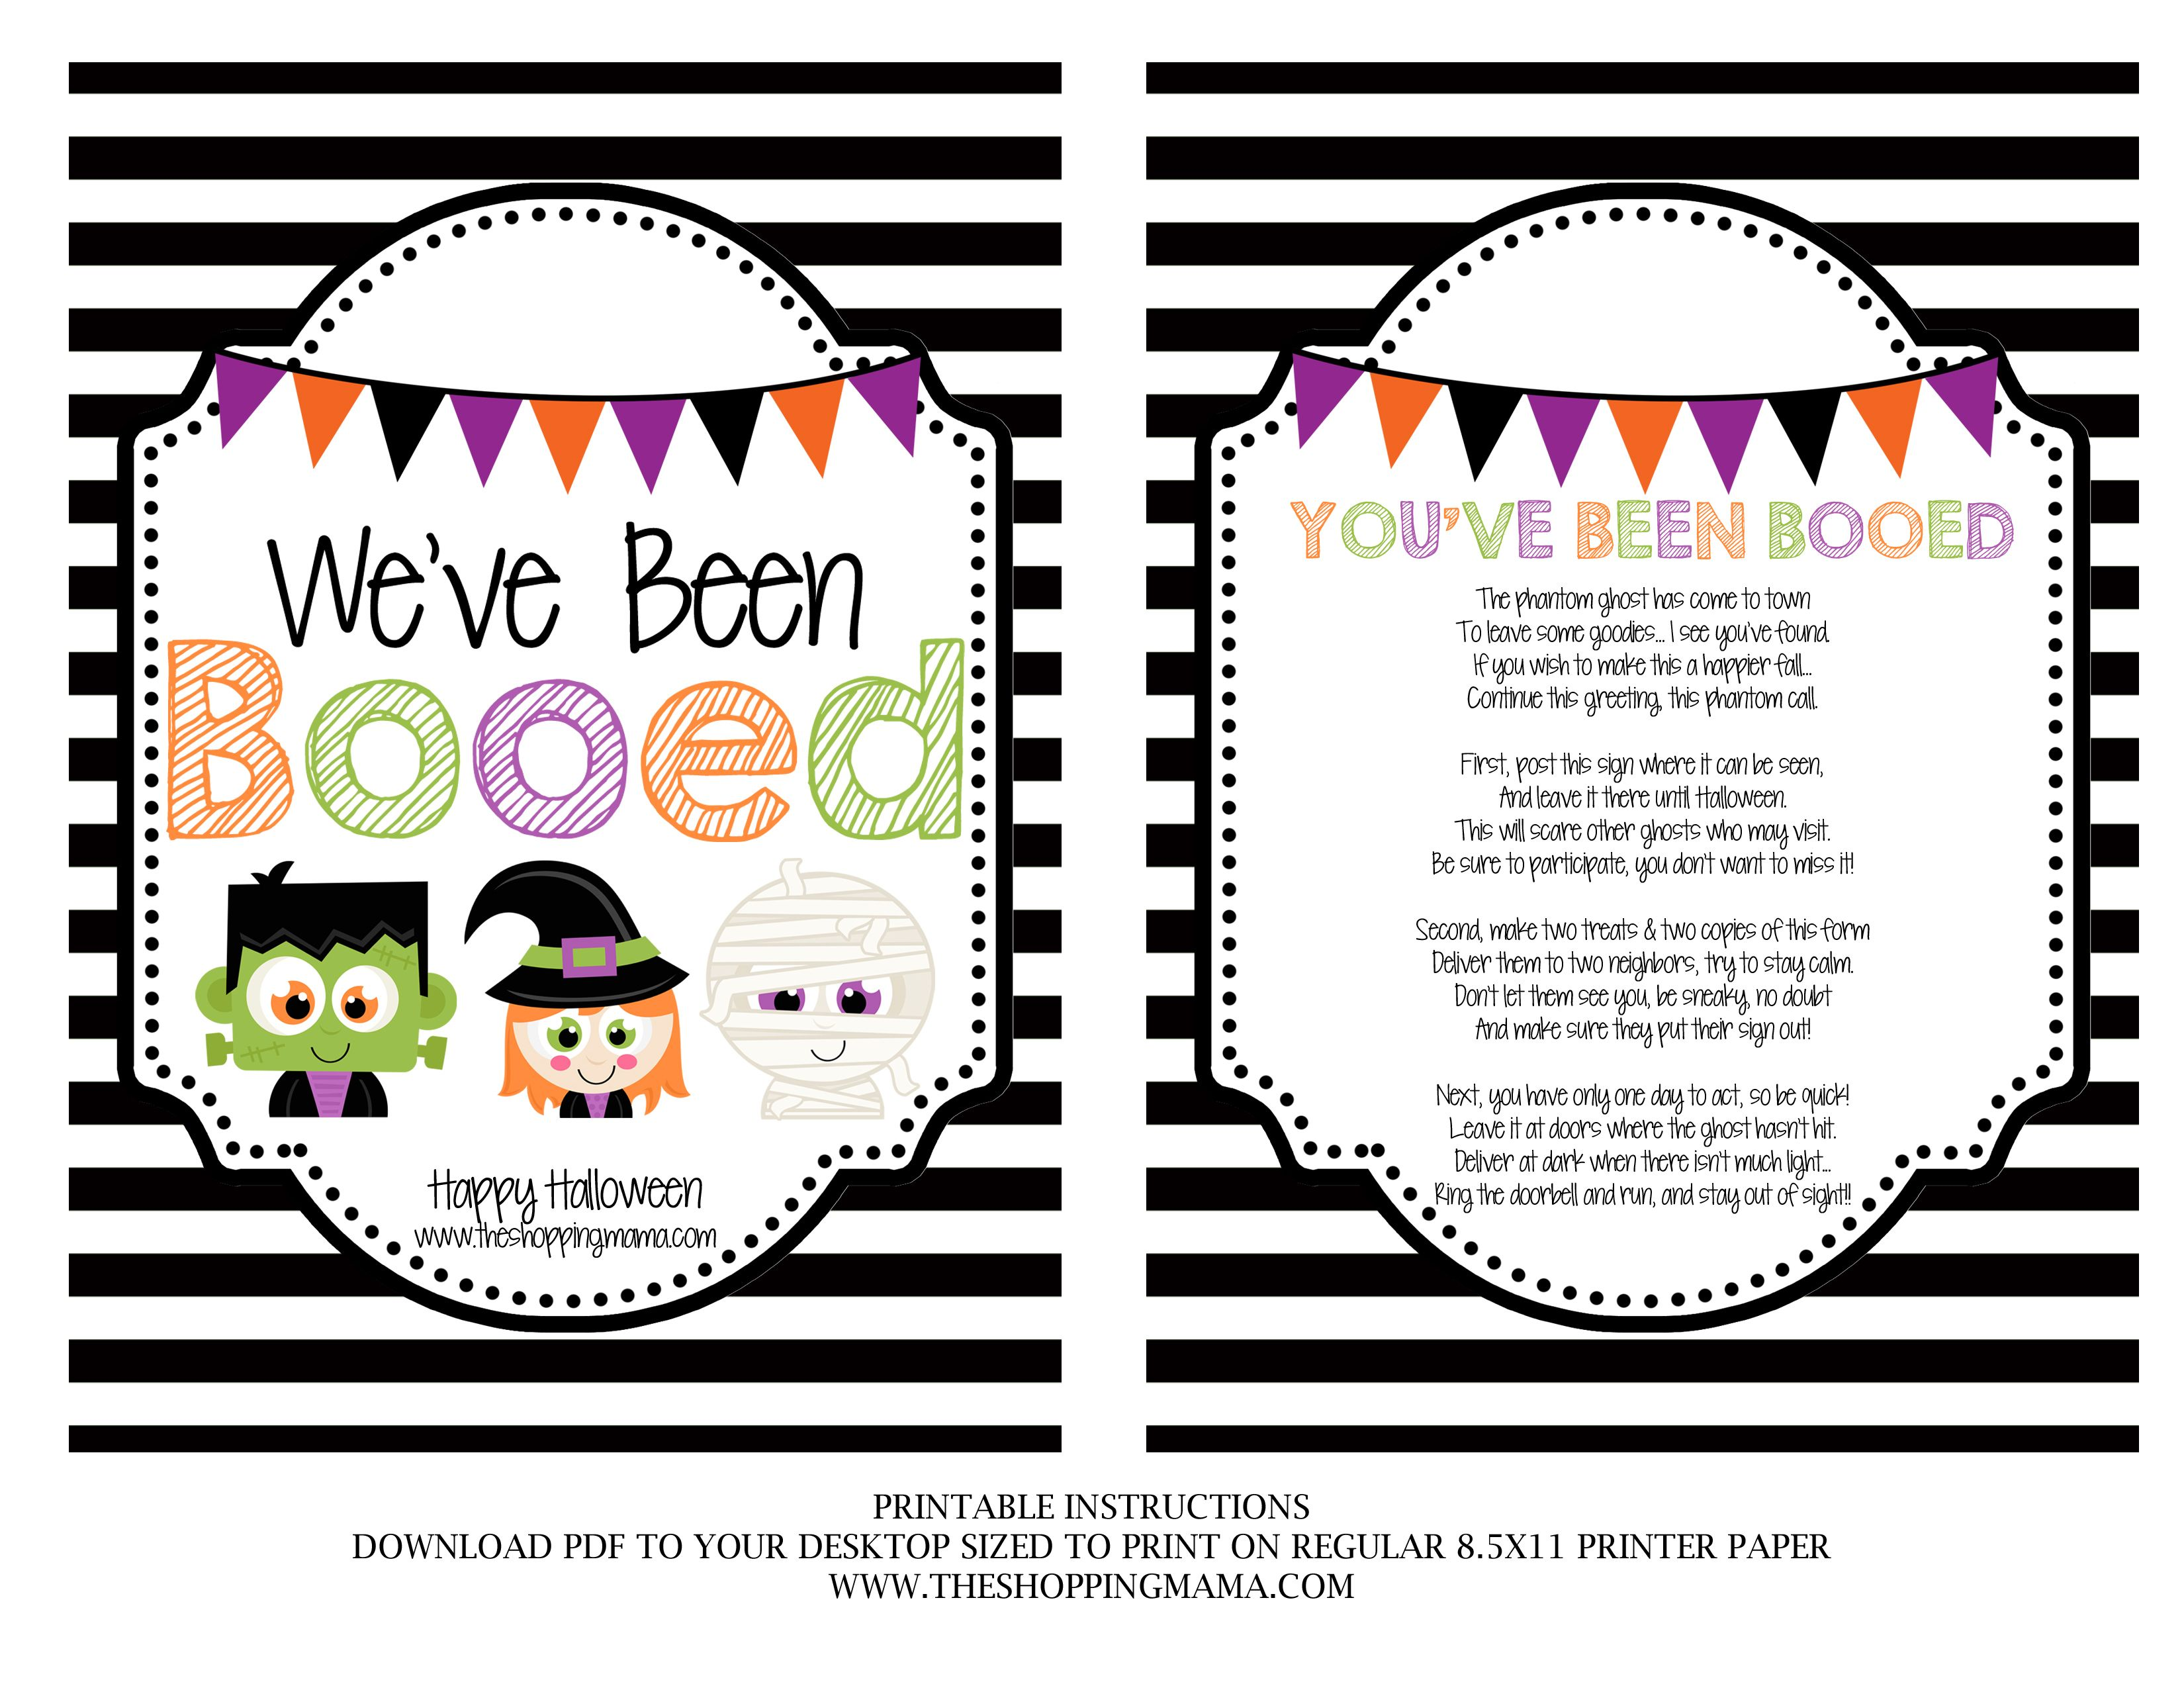 picture regarding You've Been Booed Printable named Weve Been Booed! Halloween Boo online games, Boo signal, Youve